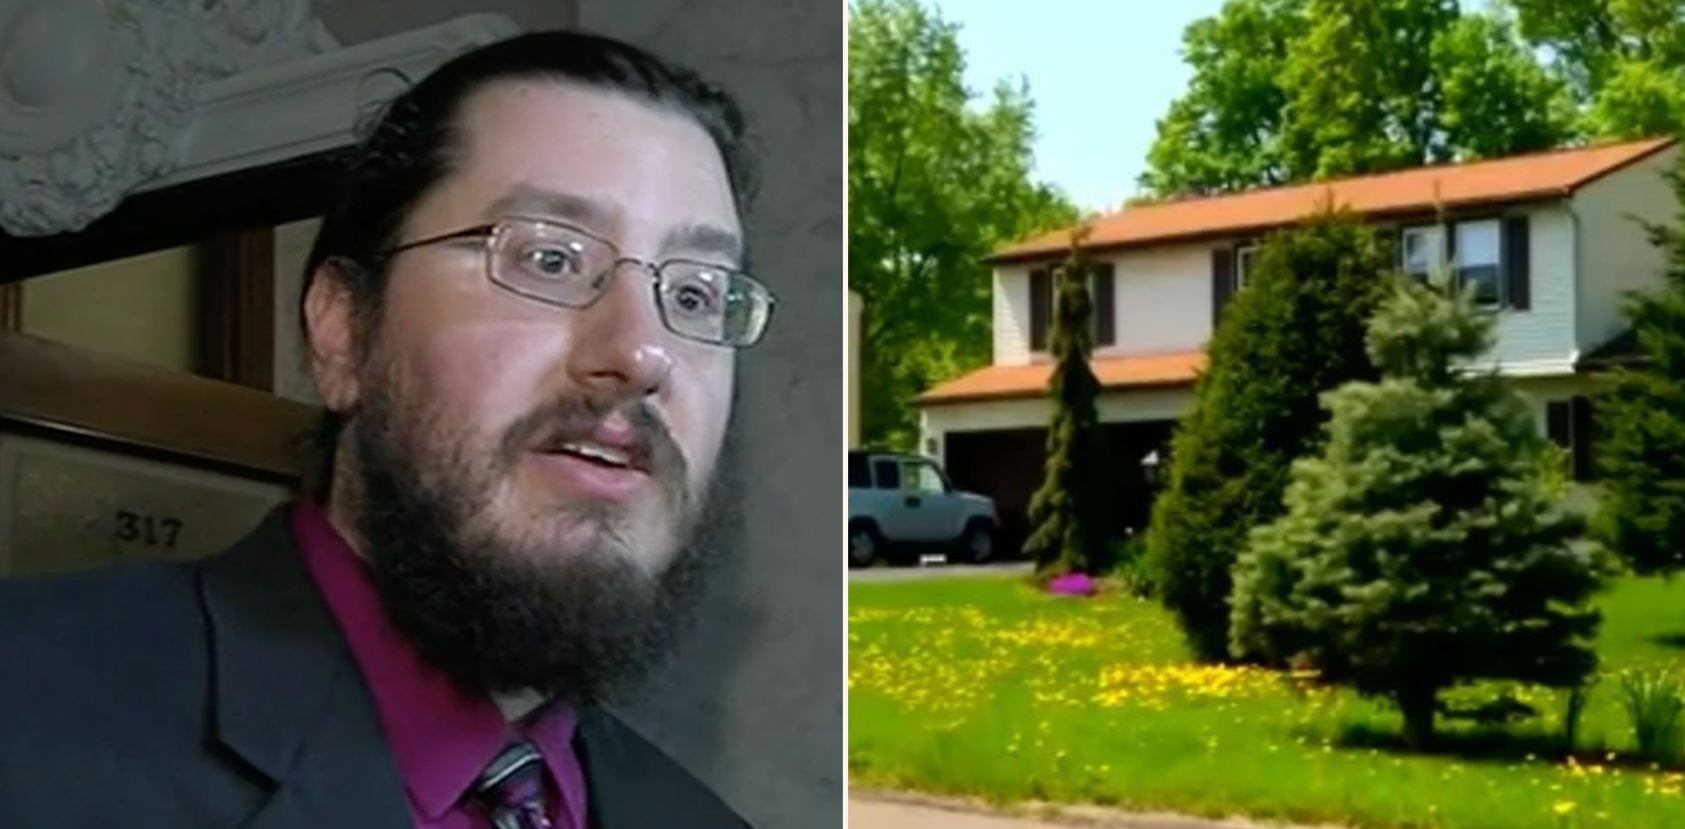 Parents sue 30 year old son who refuses to move out